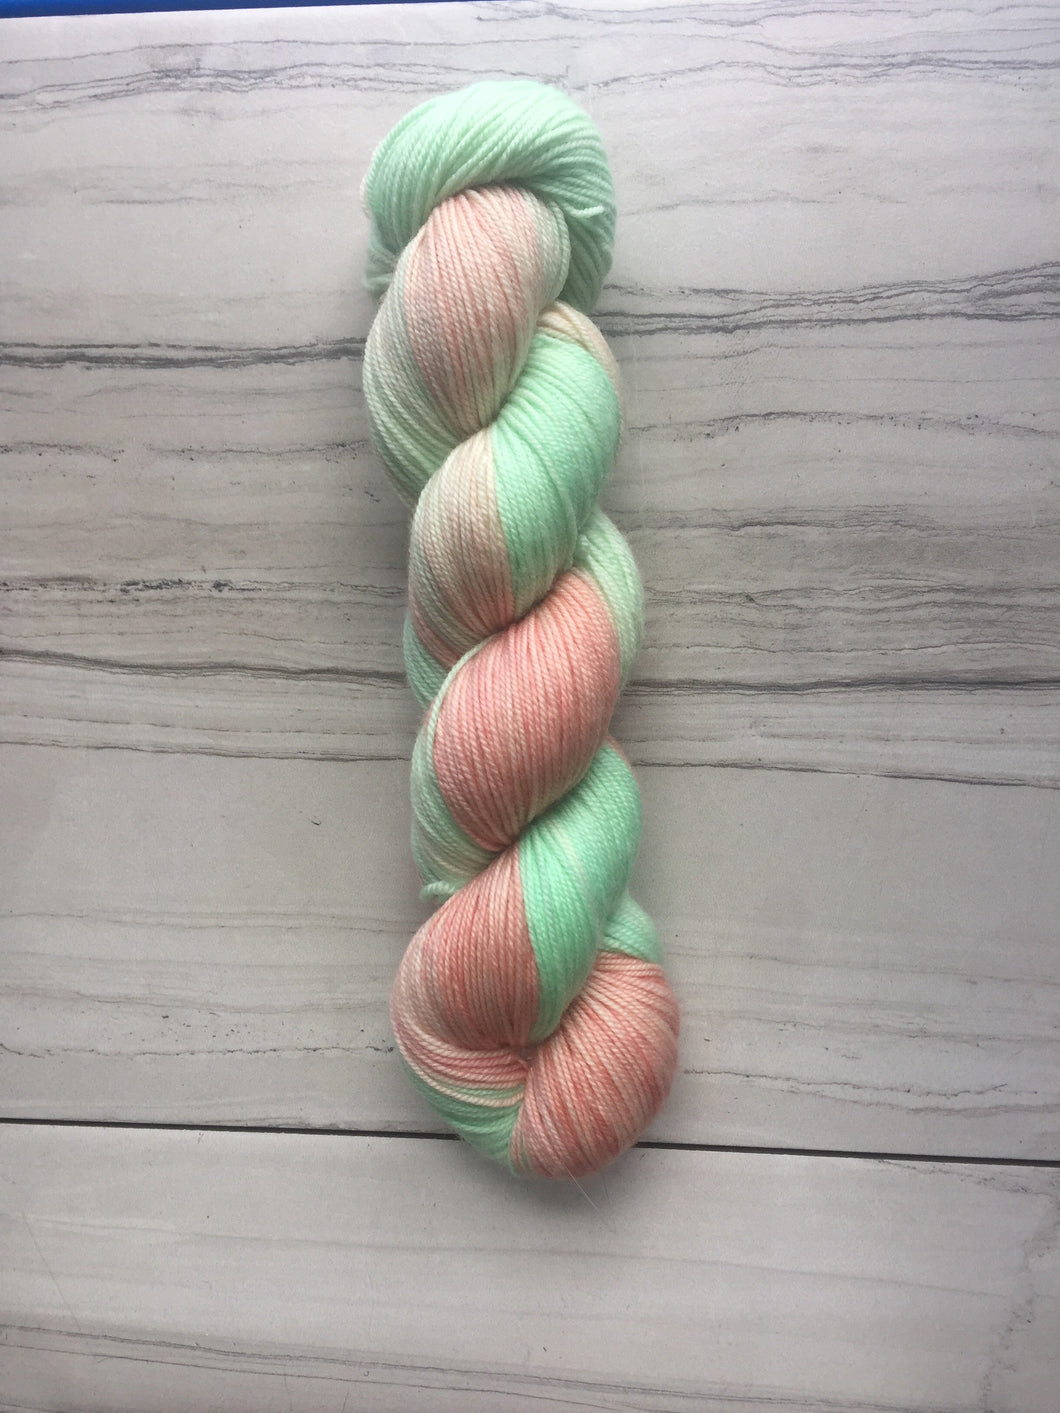 Peachy Green - Sport weight